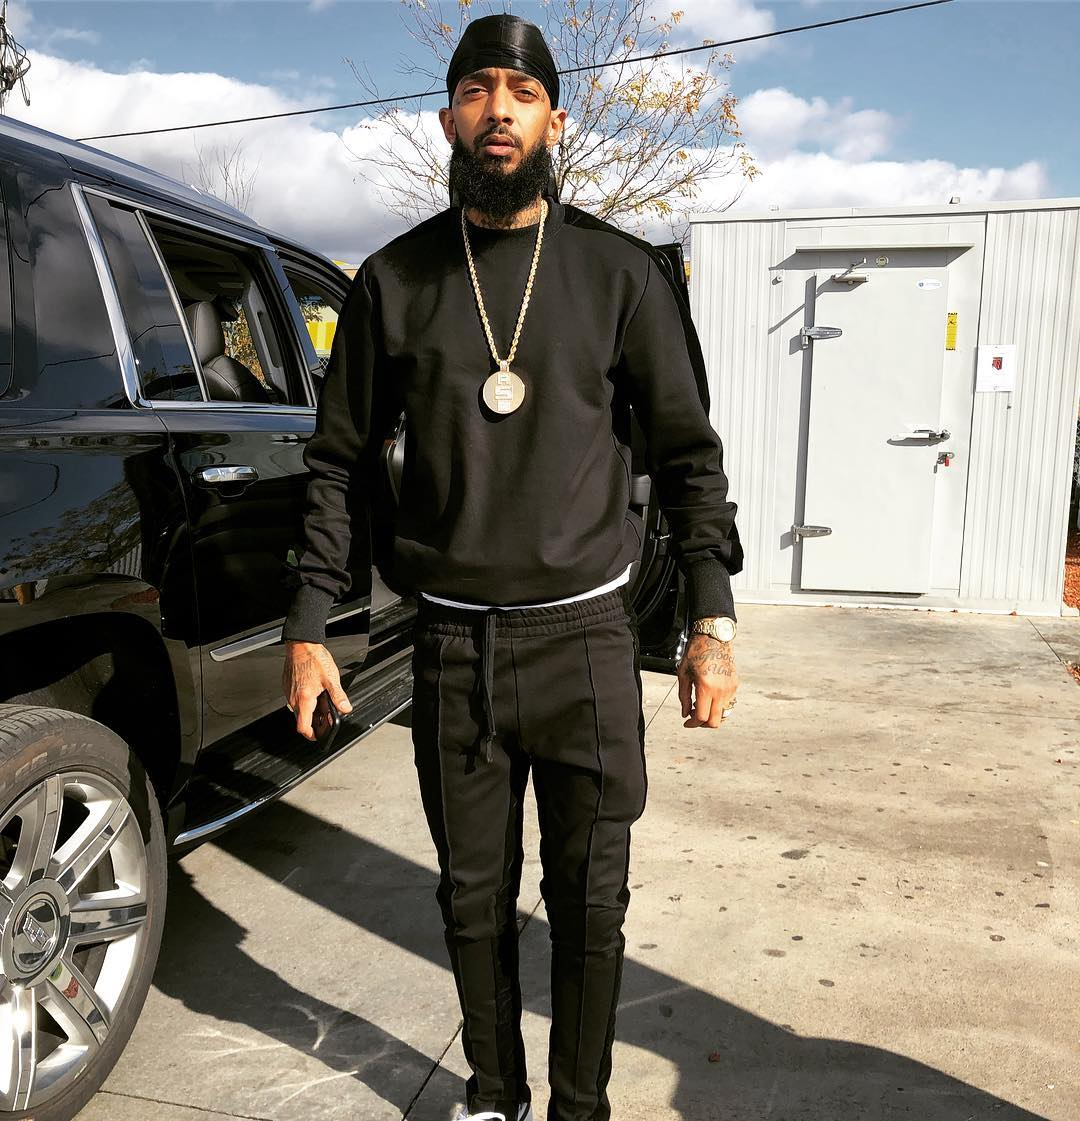 Nipsey Hussle wearing black attire and a do-rag